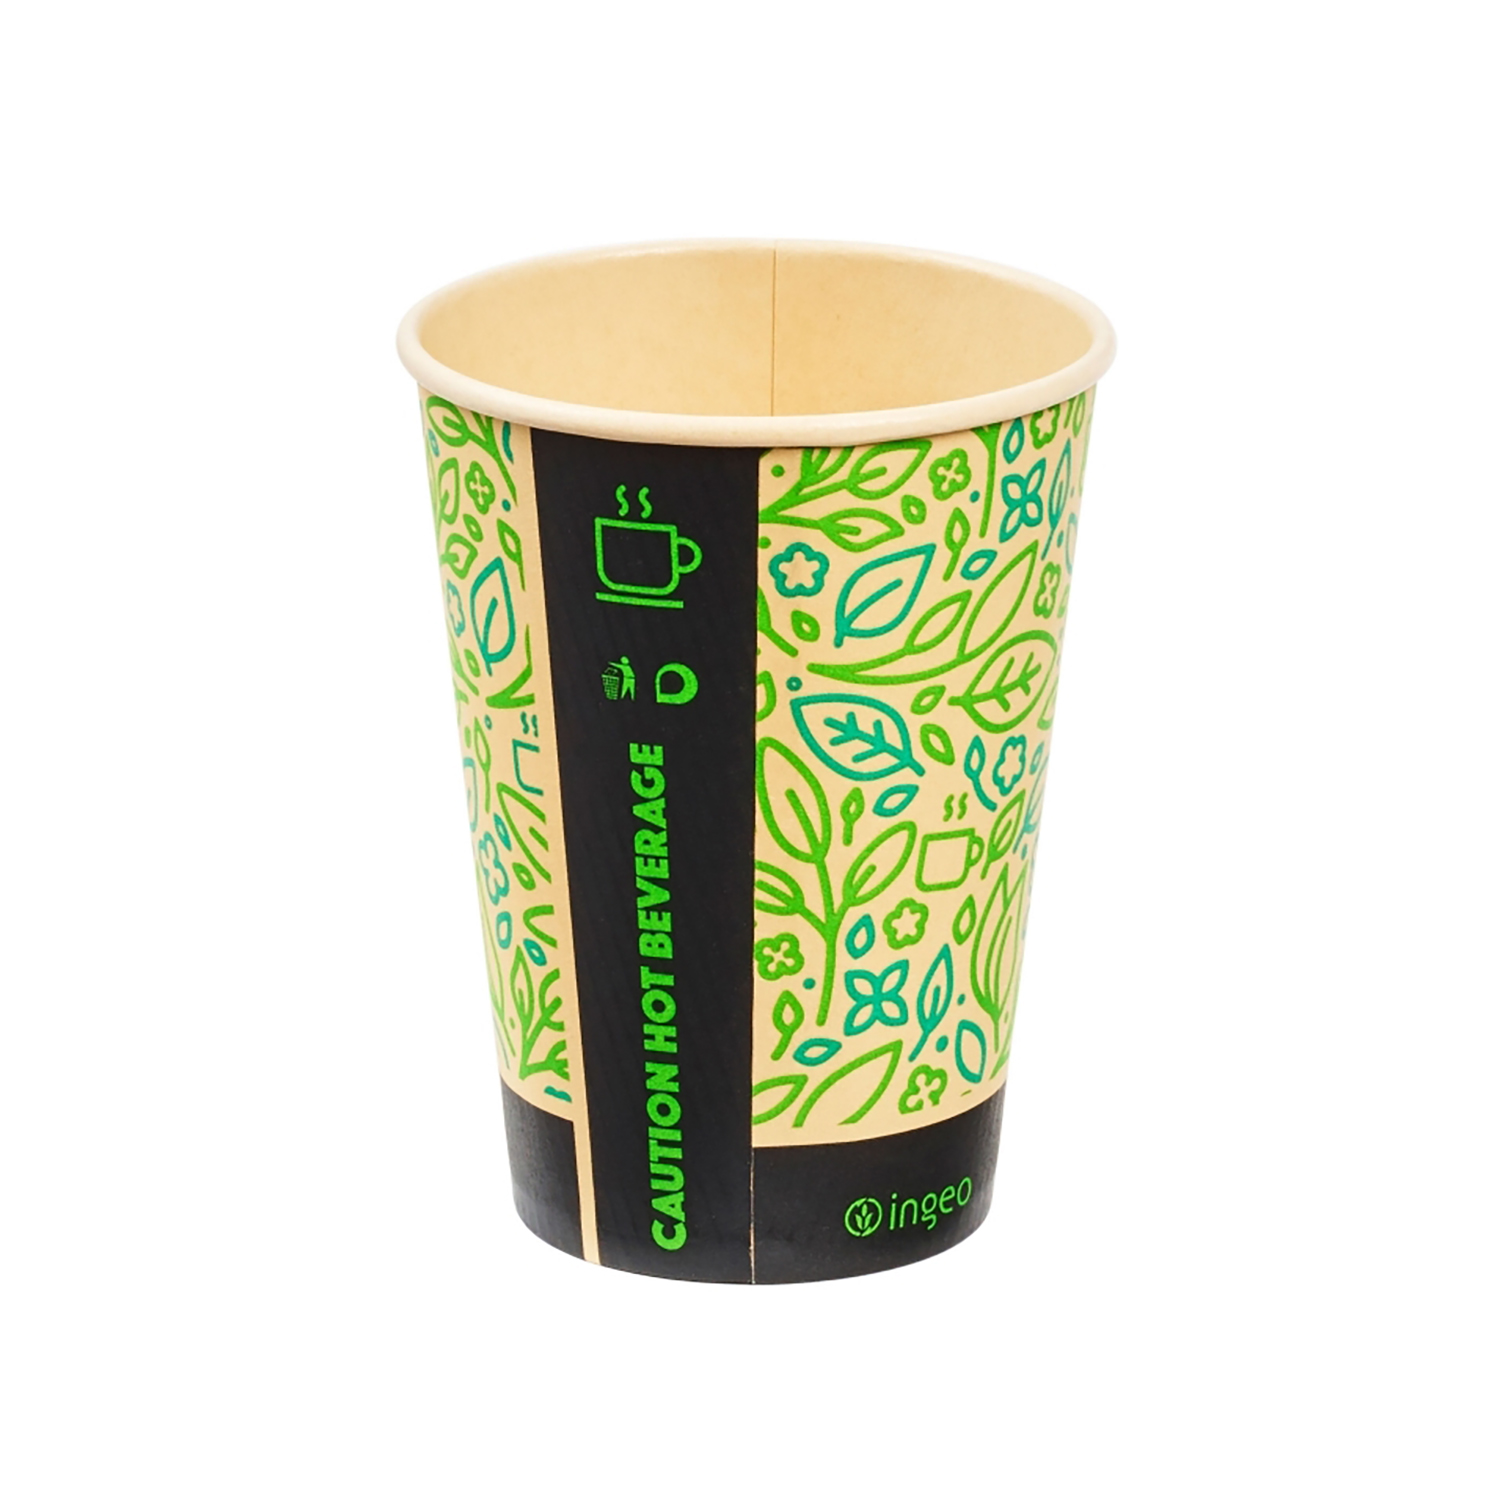 Catering Utensils Ingeo Ultimate Eco Bamboo 12oz Biodegradable Disposable Cups Ref 0511224 Pack 25